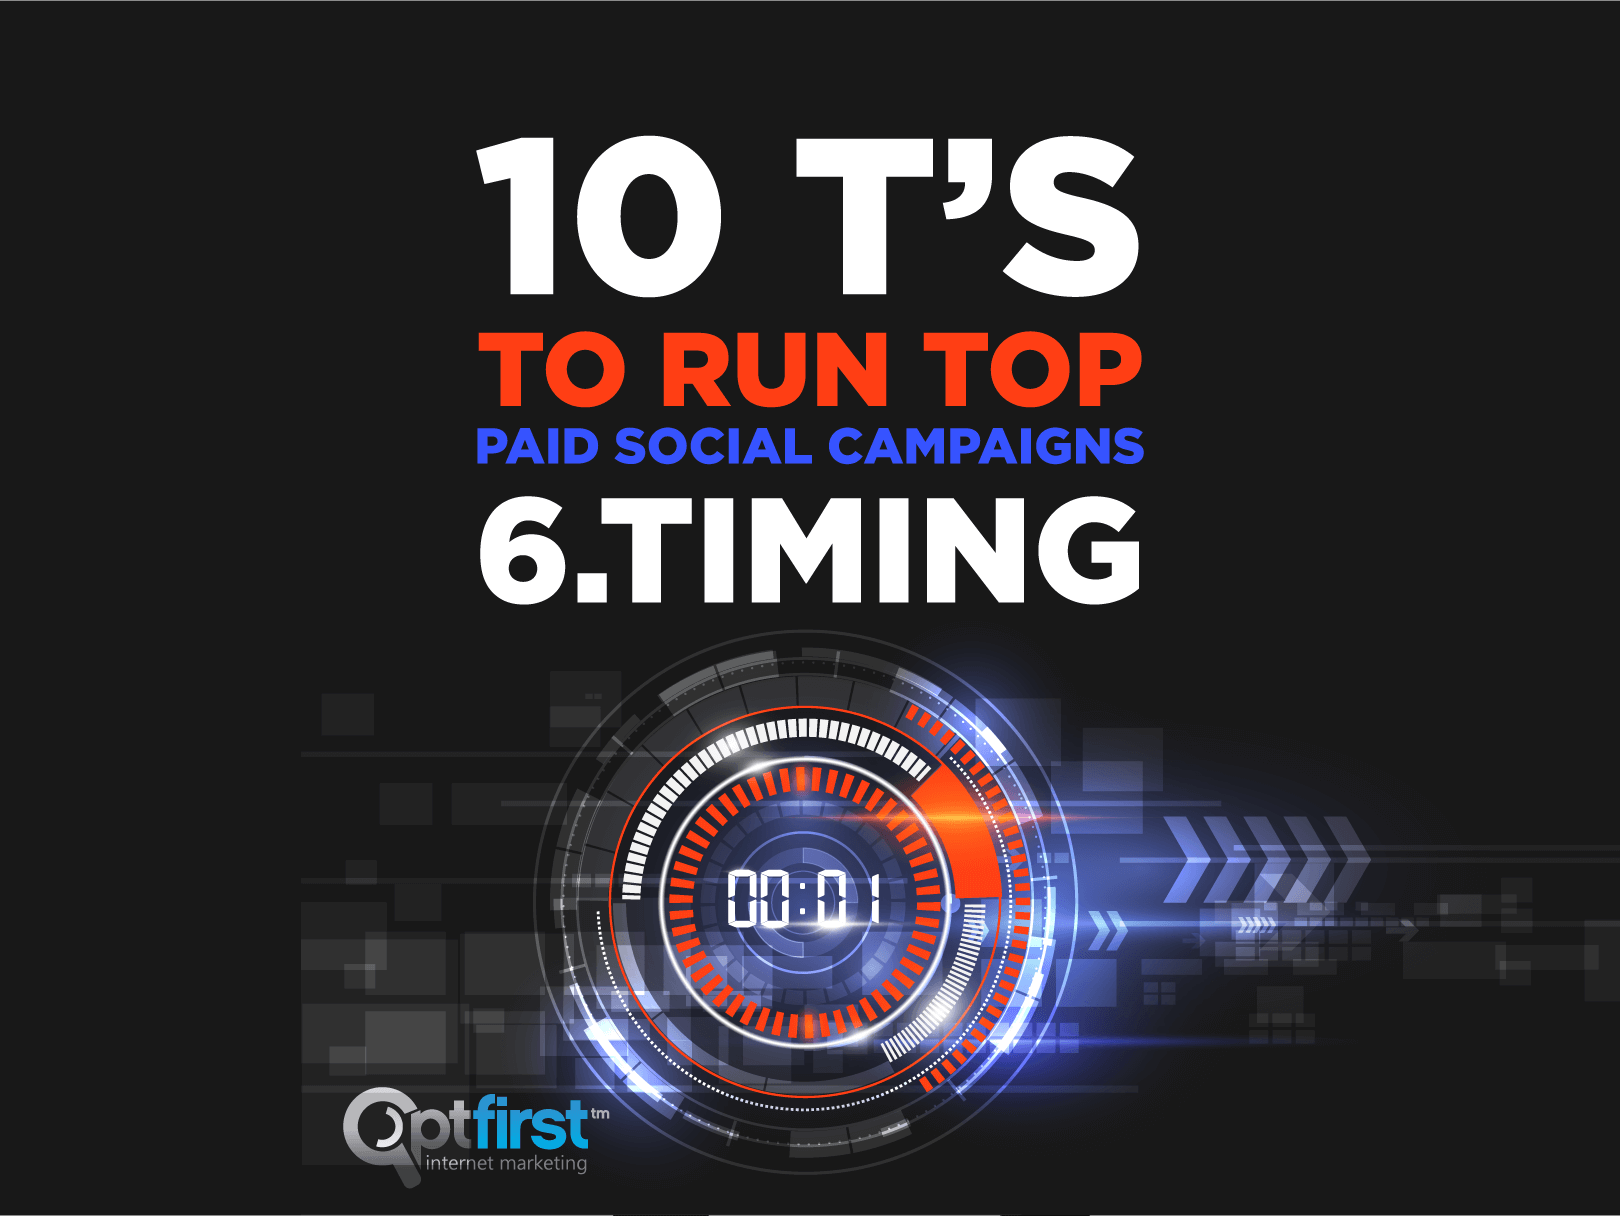 10 T's to Run Top Paid Social Campaigns, Step 6: Timing